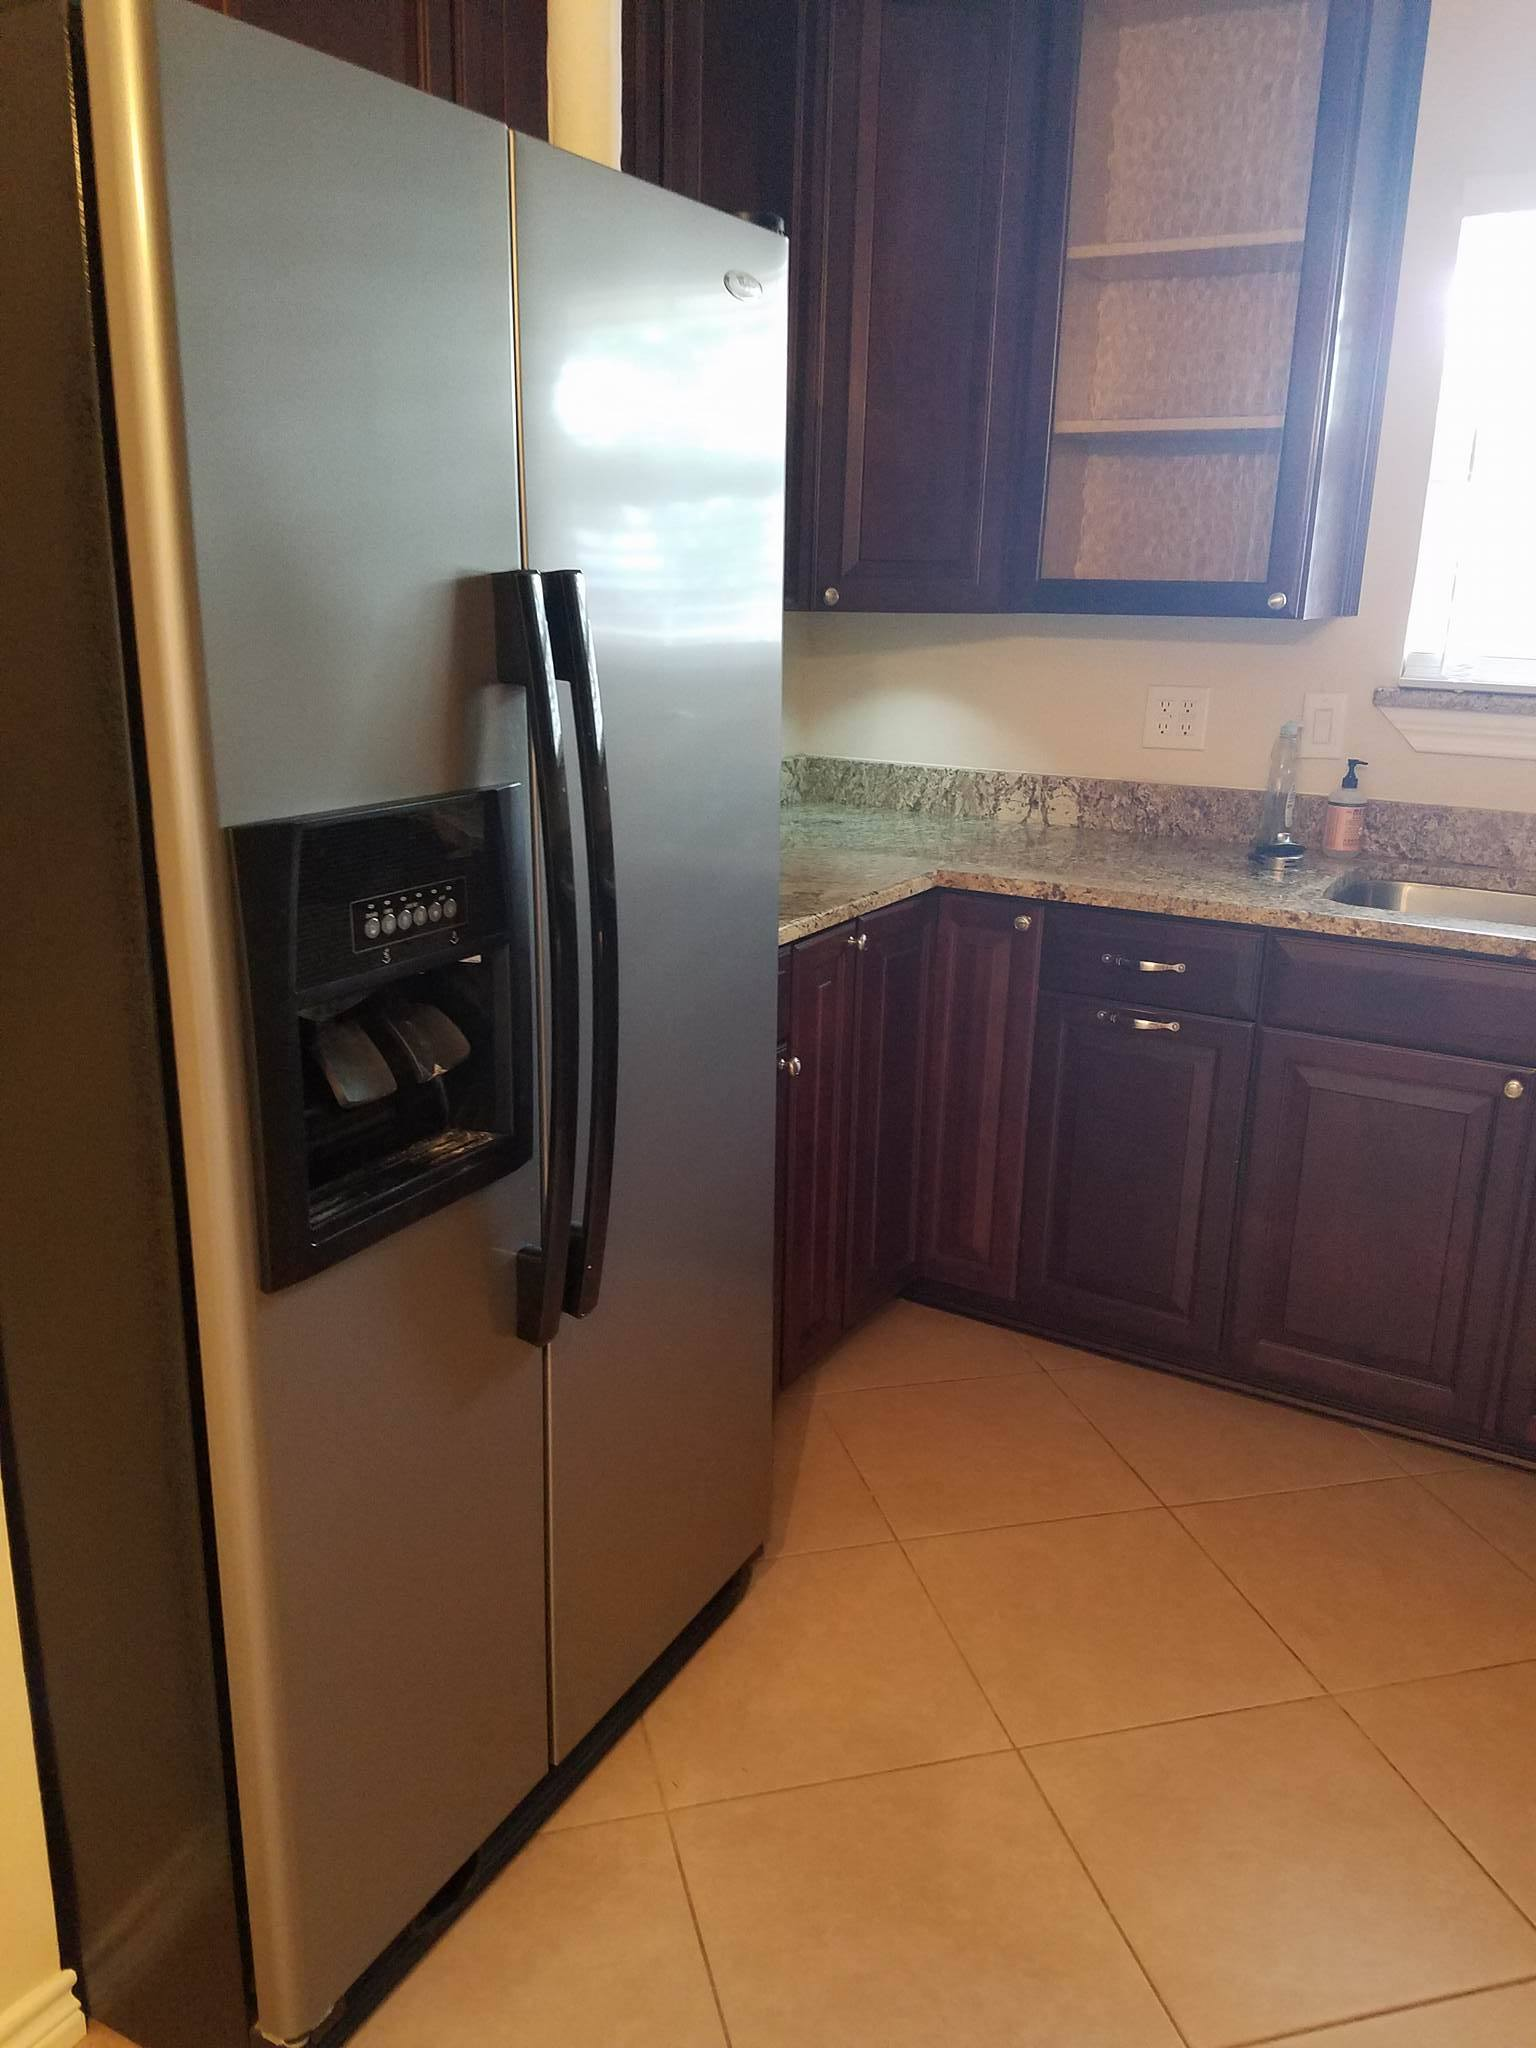 Refrigerator and Counter Top